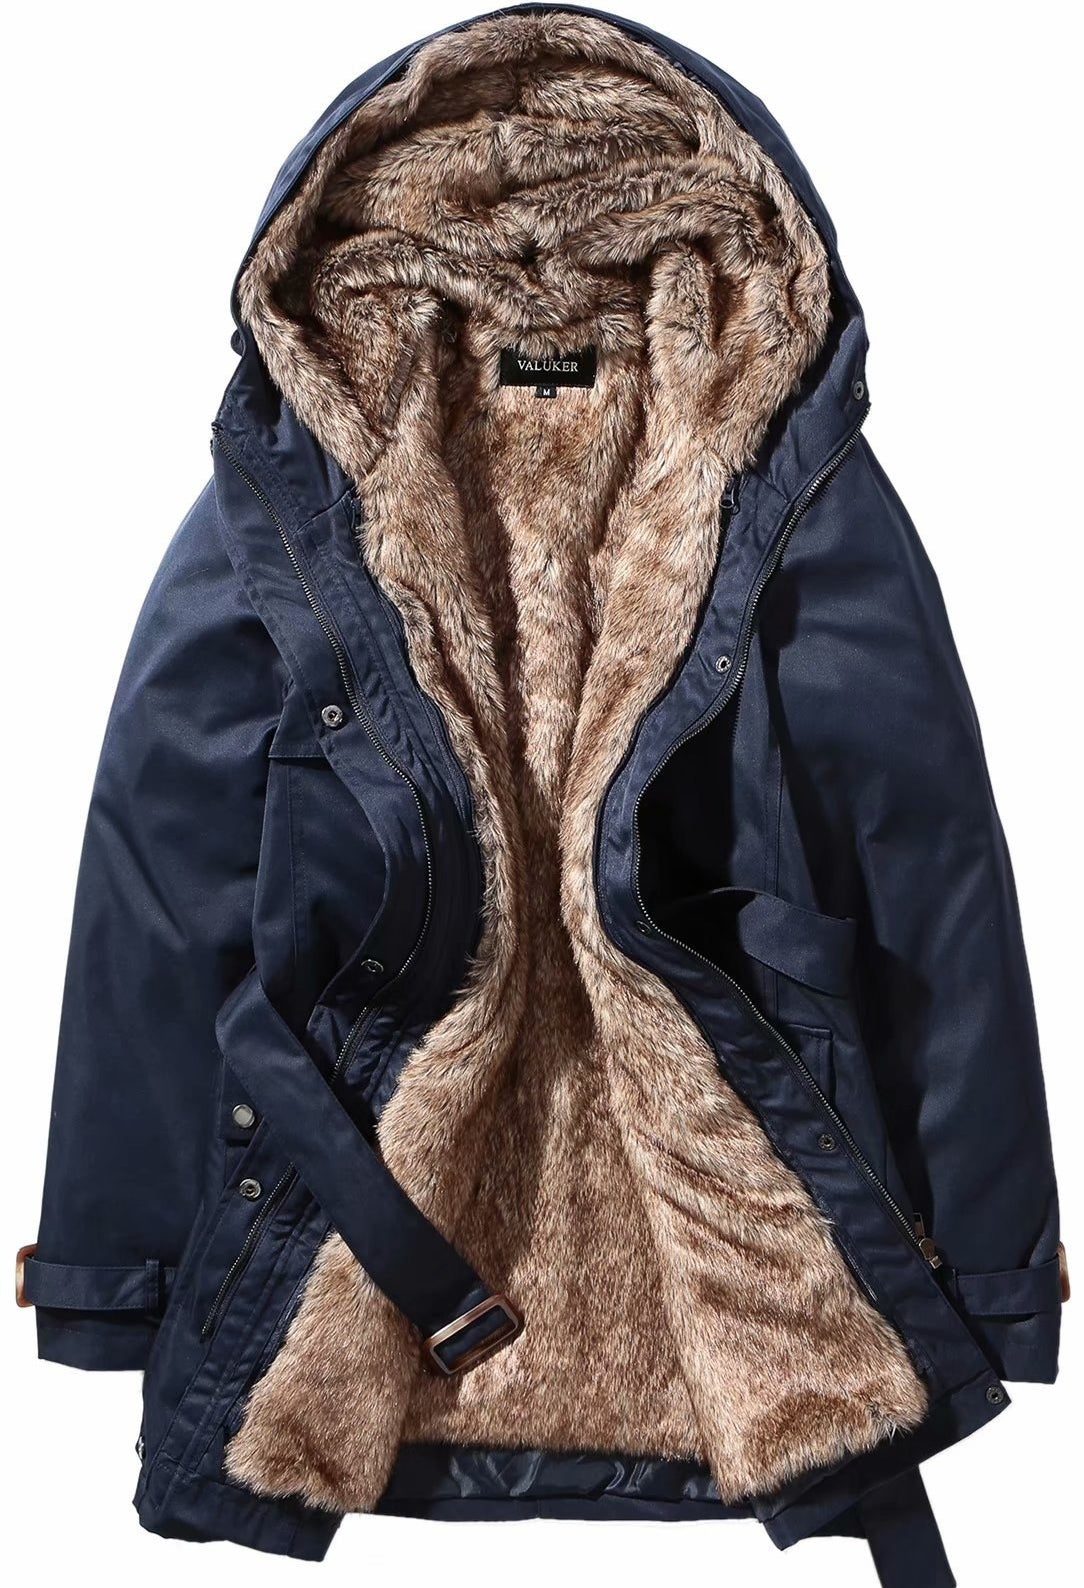 """Promising review: """"This is really a wonderful coat at a great price! It is warm and feels very high-quality. The hood is also so warm, you don't need a hat. Highly recommend."""" —Tina ZhouPrice: $99.99 (available in three colors, and sizes XS–2XL)"""